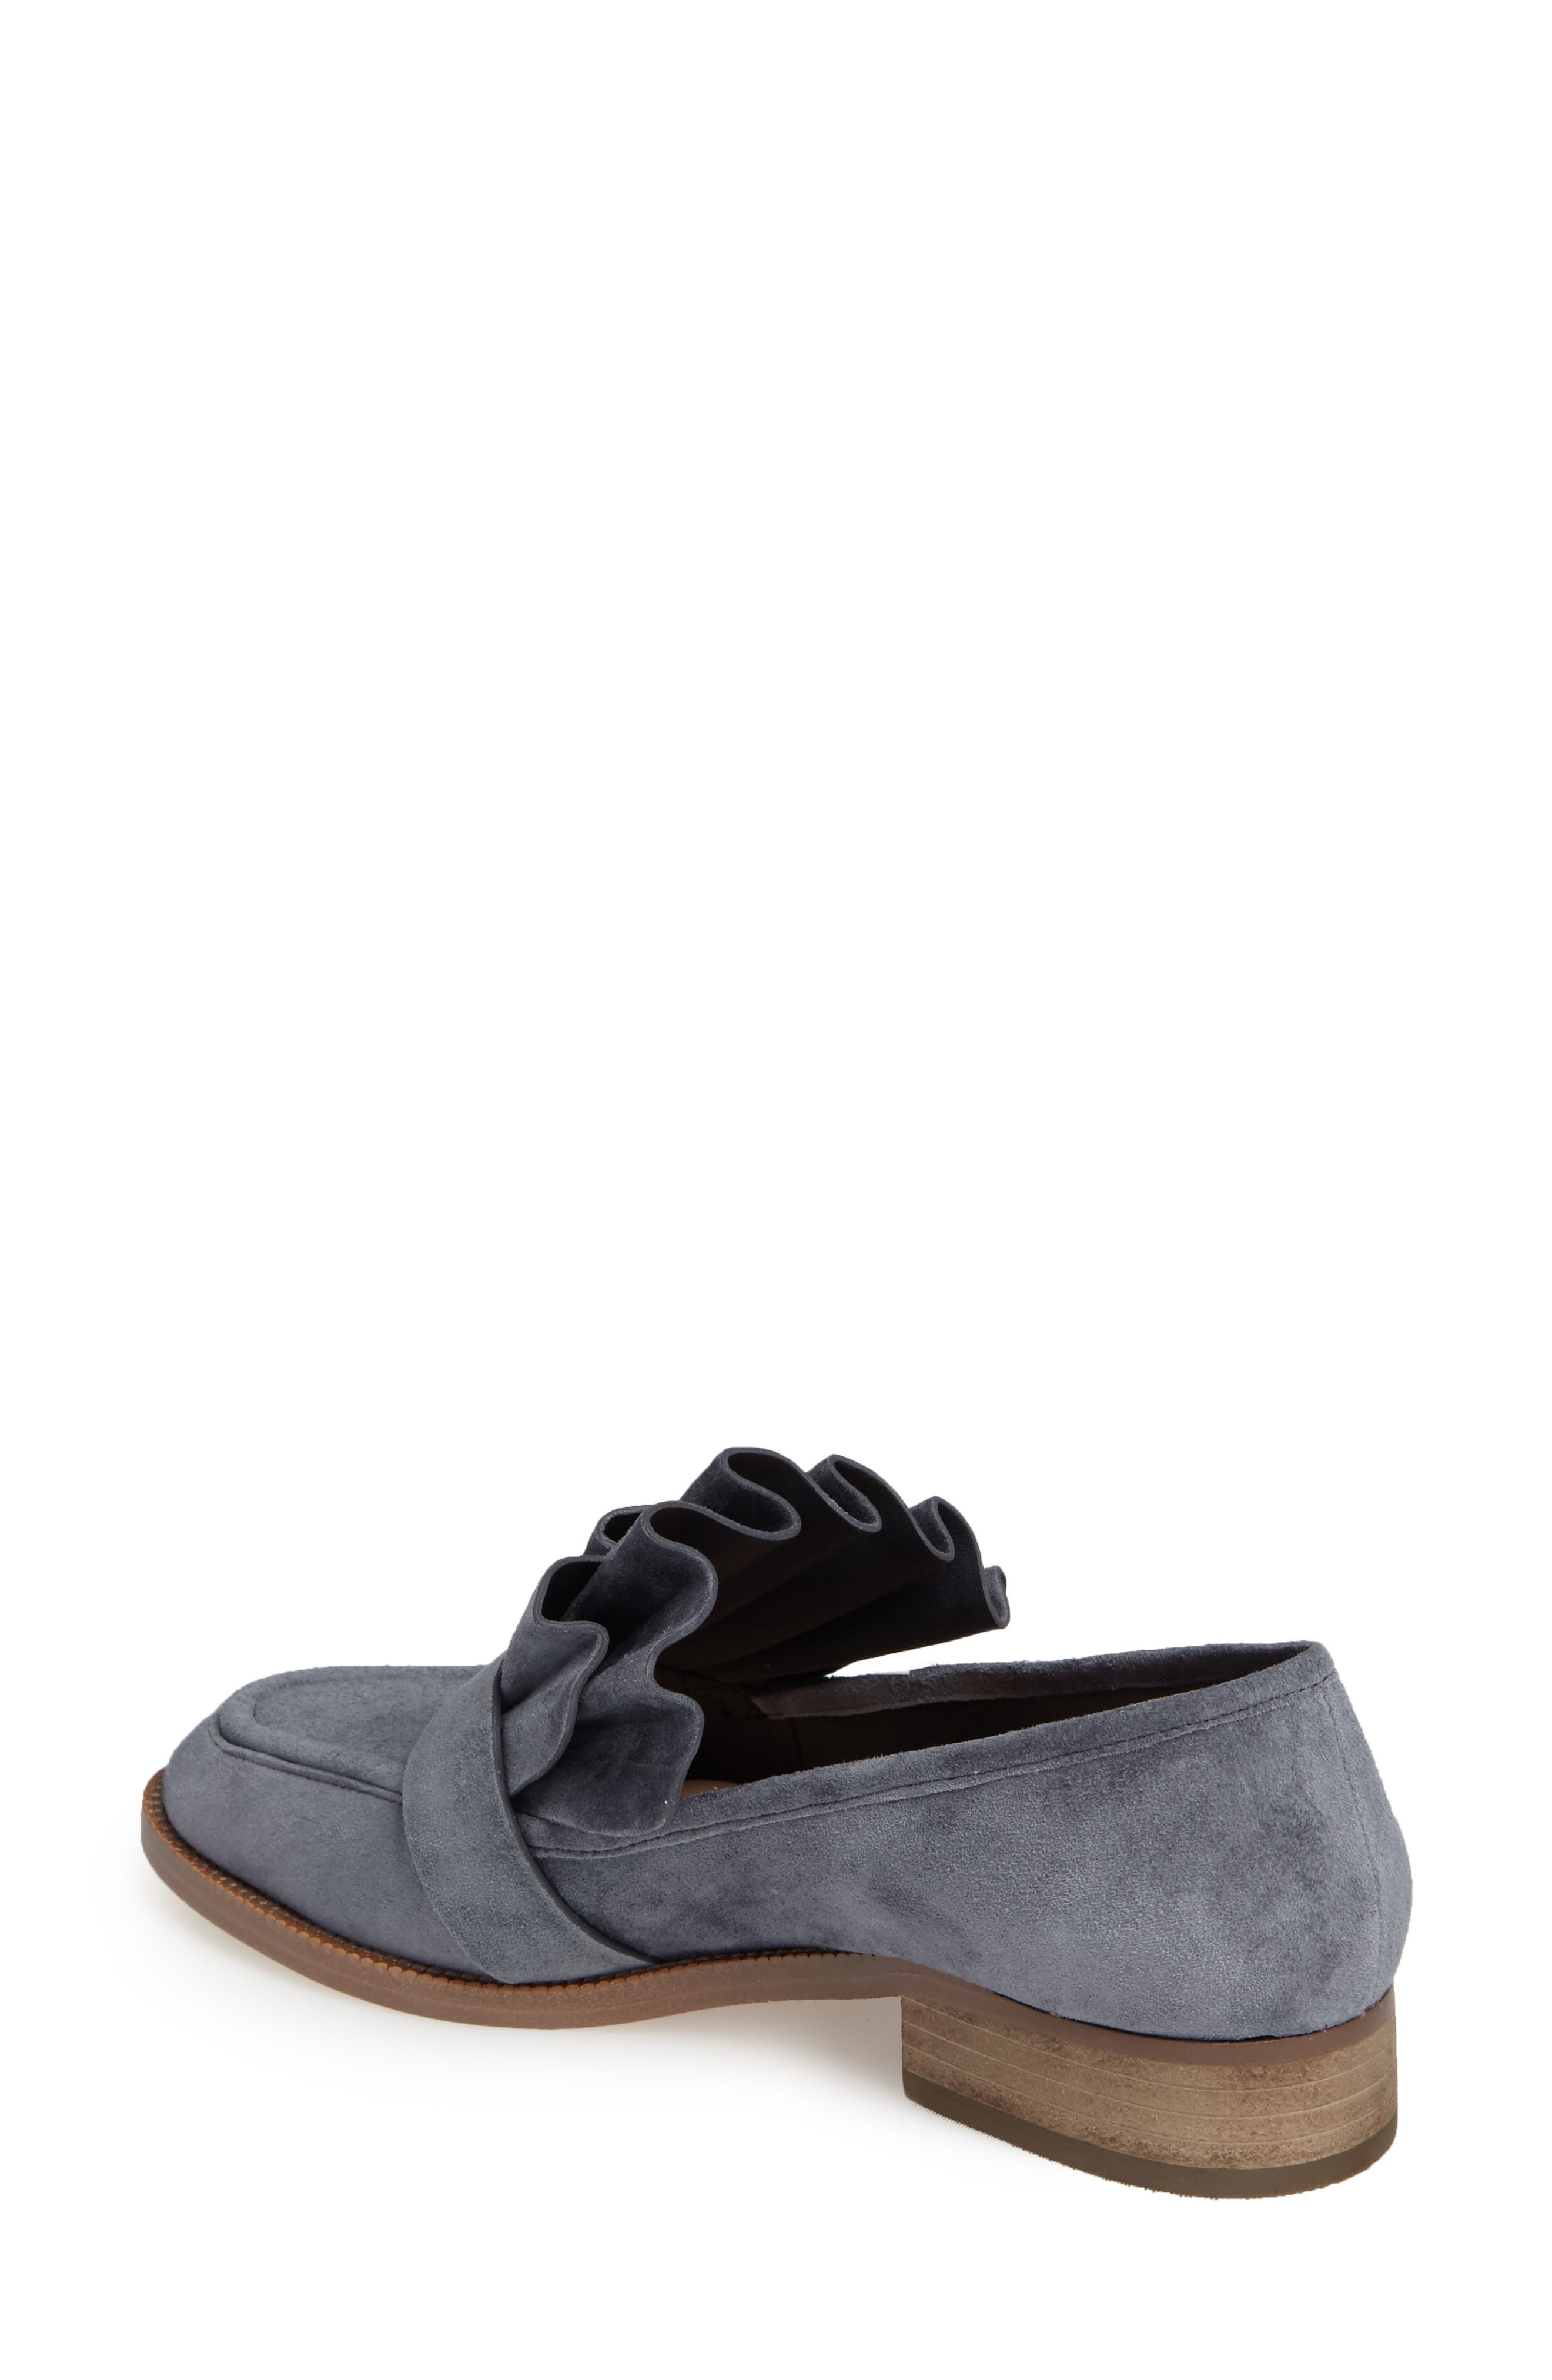 Tenley Ruffled Loafer,                             Alternate thumbnail 8, color,